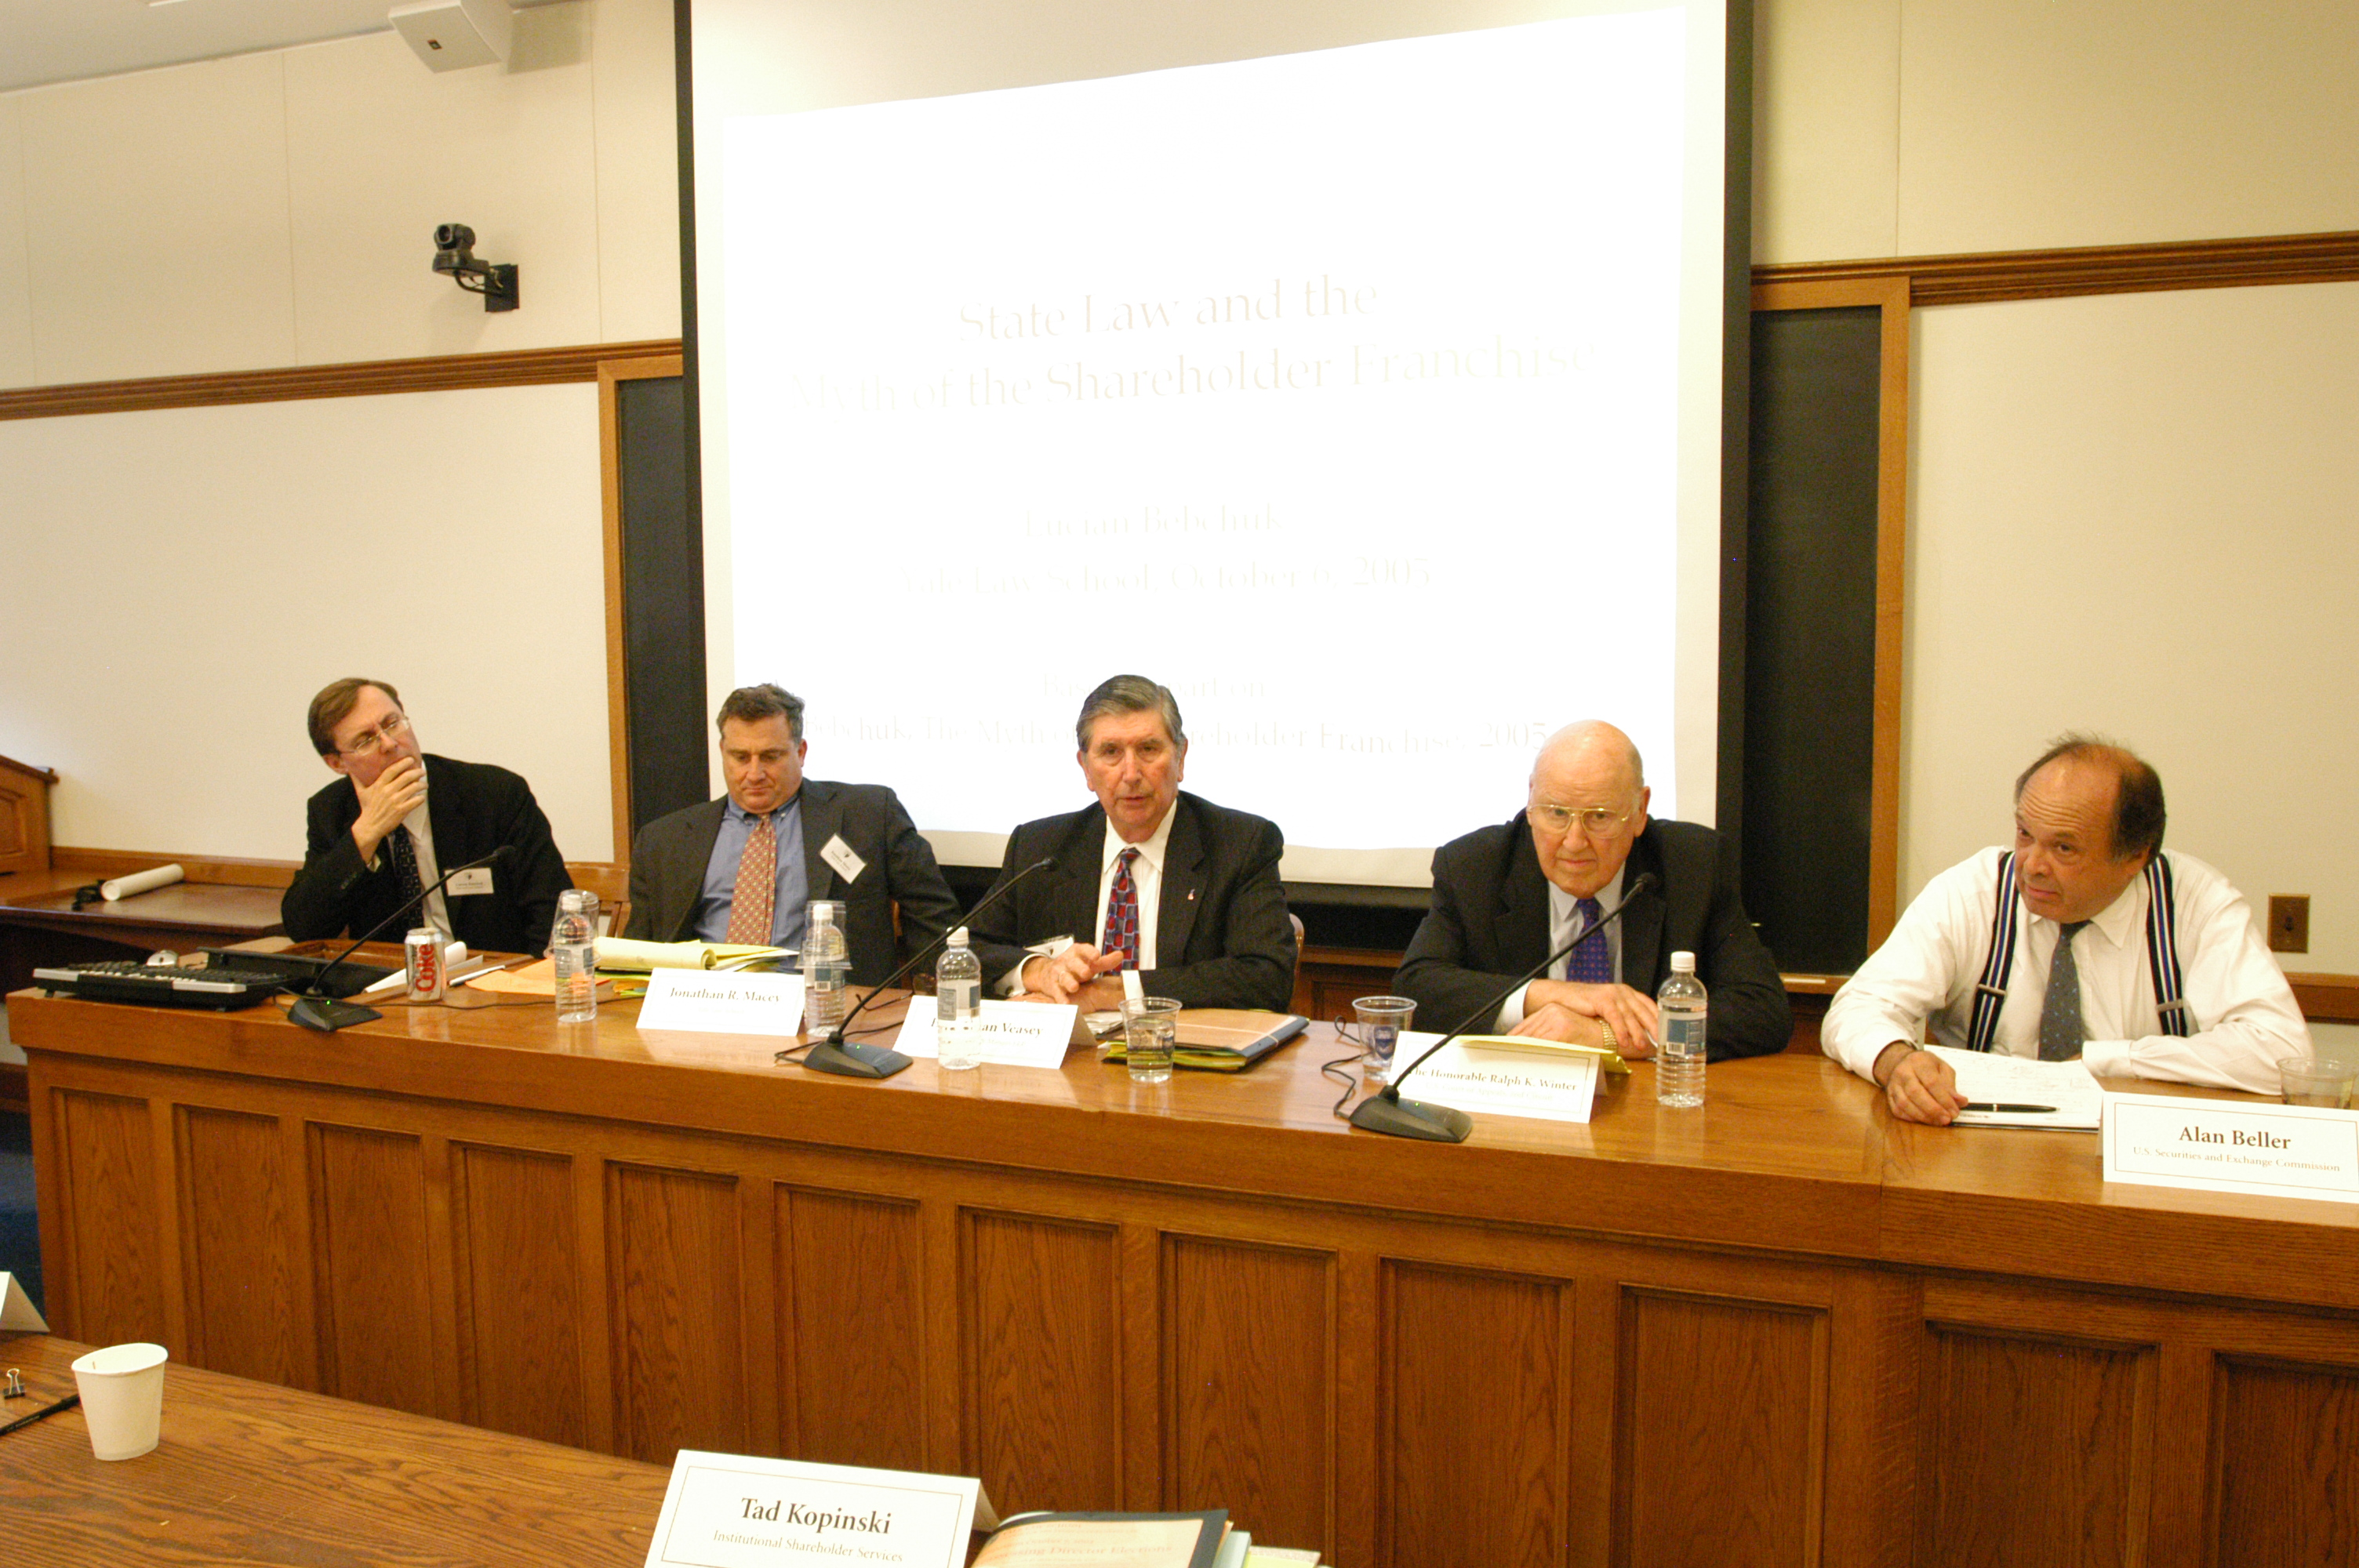 Harvard Law Prof. Lucian Bebchuk, YLS Prof. Jonathan Macey '82, Hon. E. Norman Veasey, Hon. Ralph Winter '60, and Alan Beller